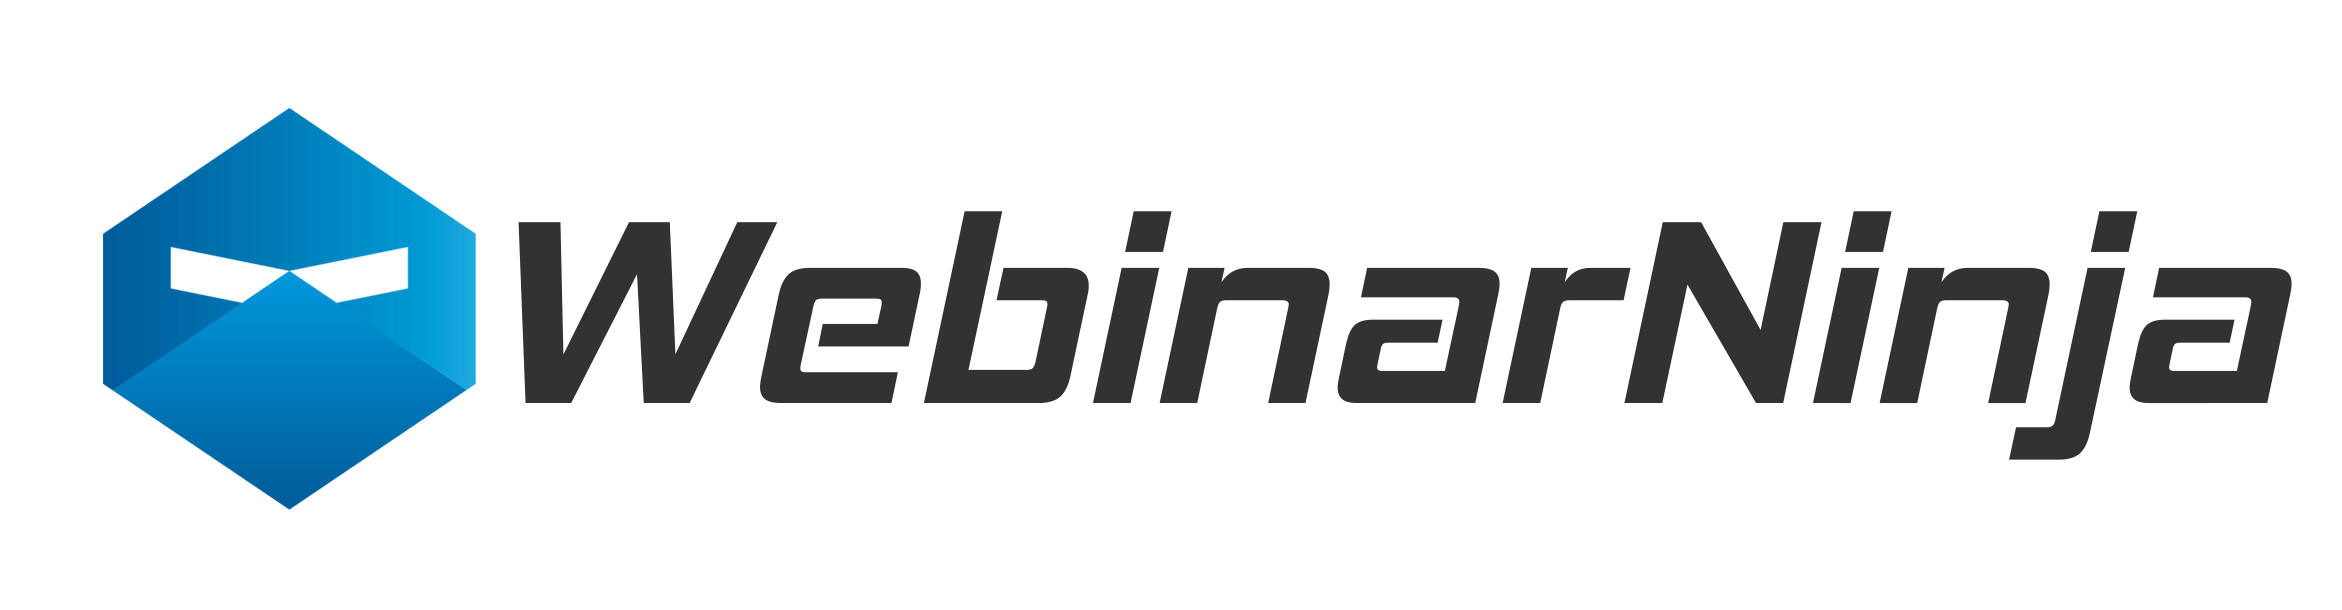 Wouldn't it be awesome to be able to easily create engaging webinars that look great and make you look like a pro? Go to WebinarNinja.com for a free 14-day trial and exclusive bonuses worth over $1,000!